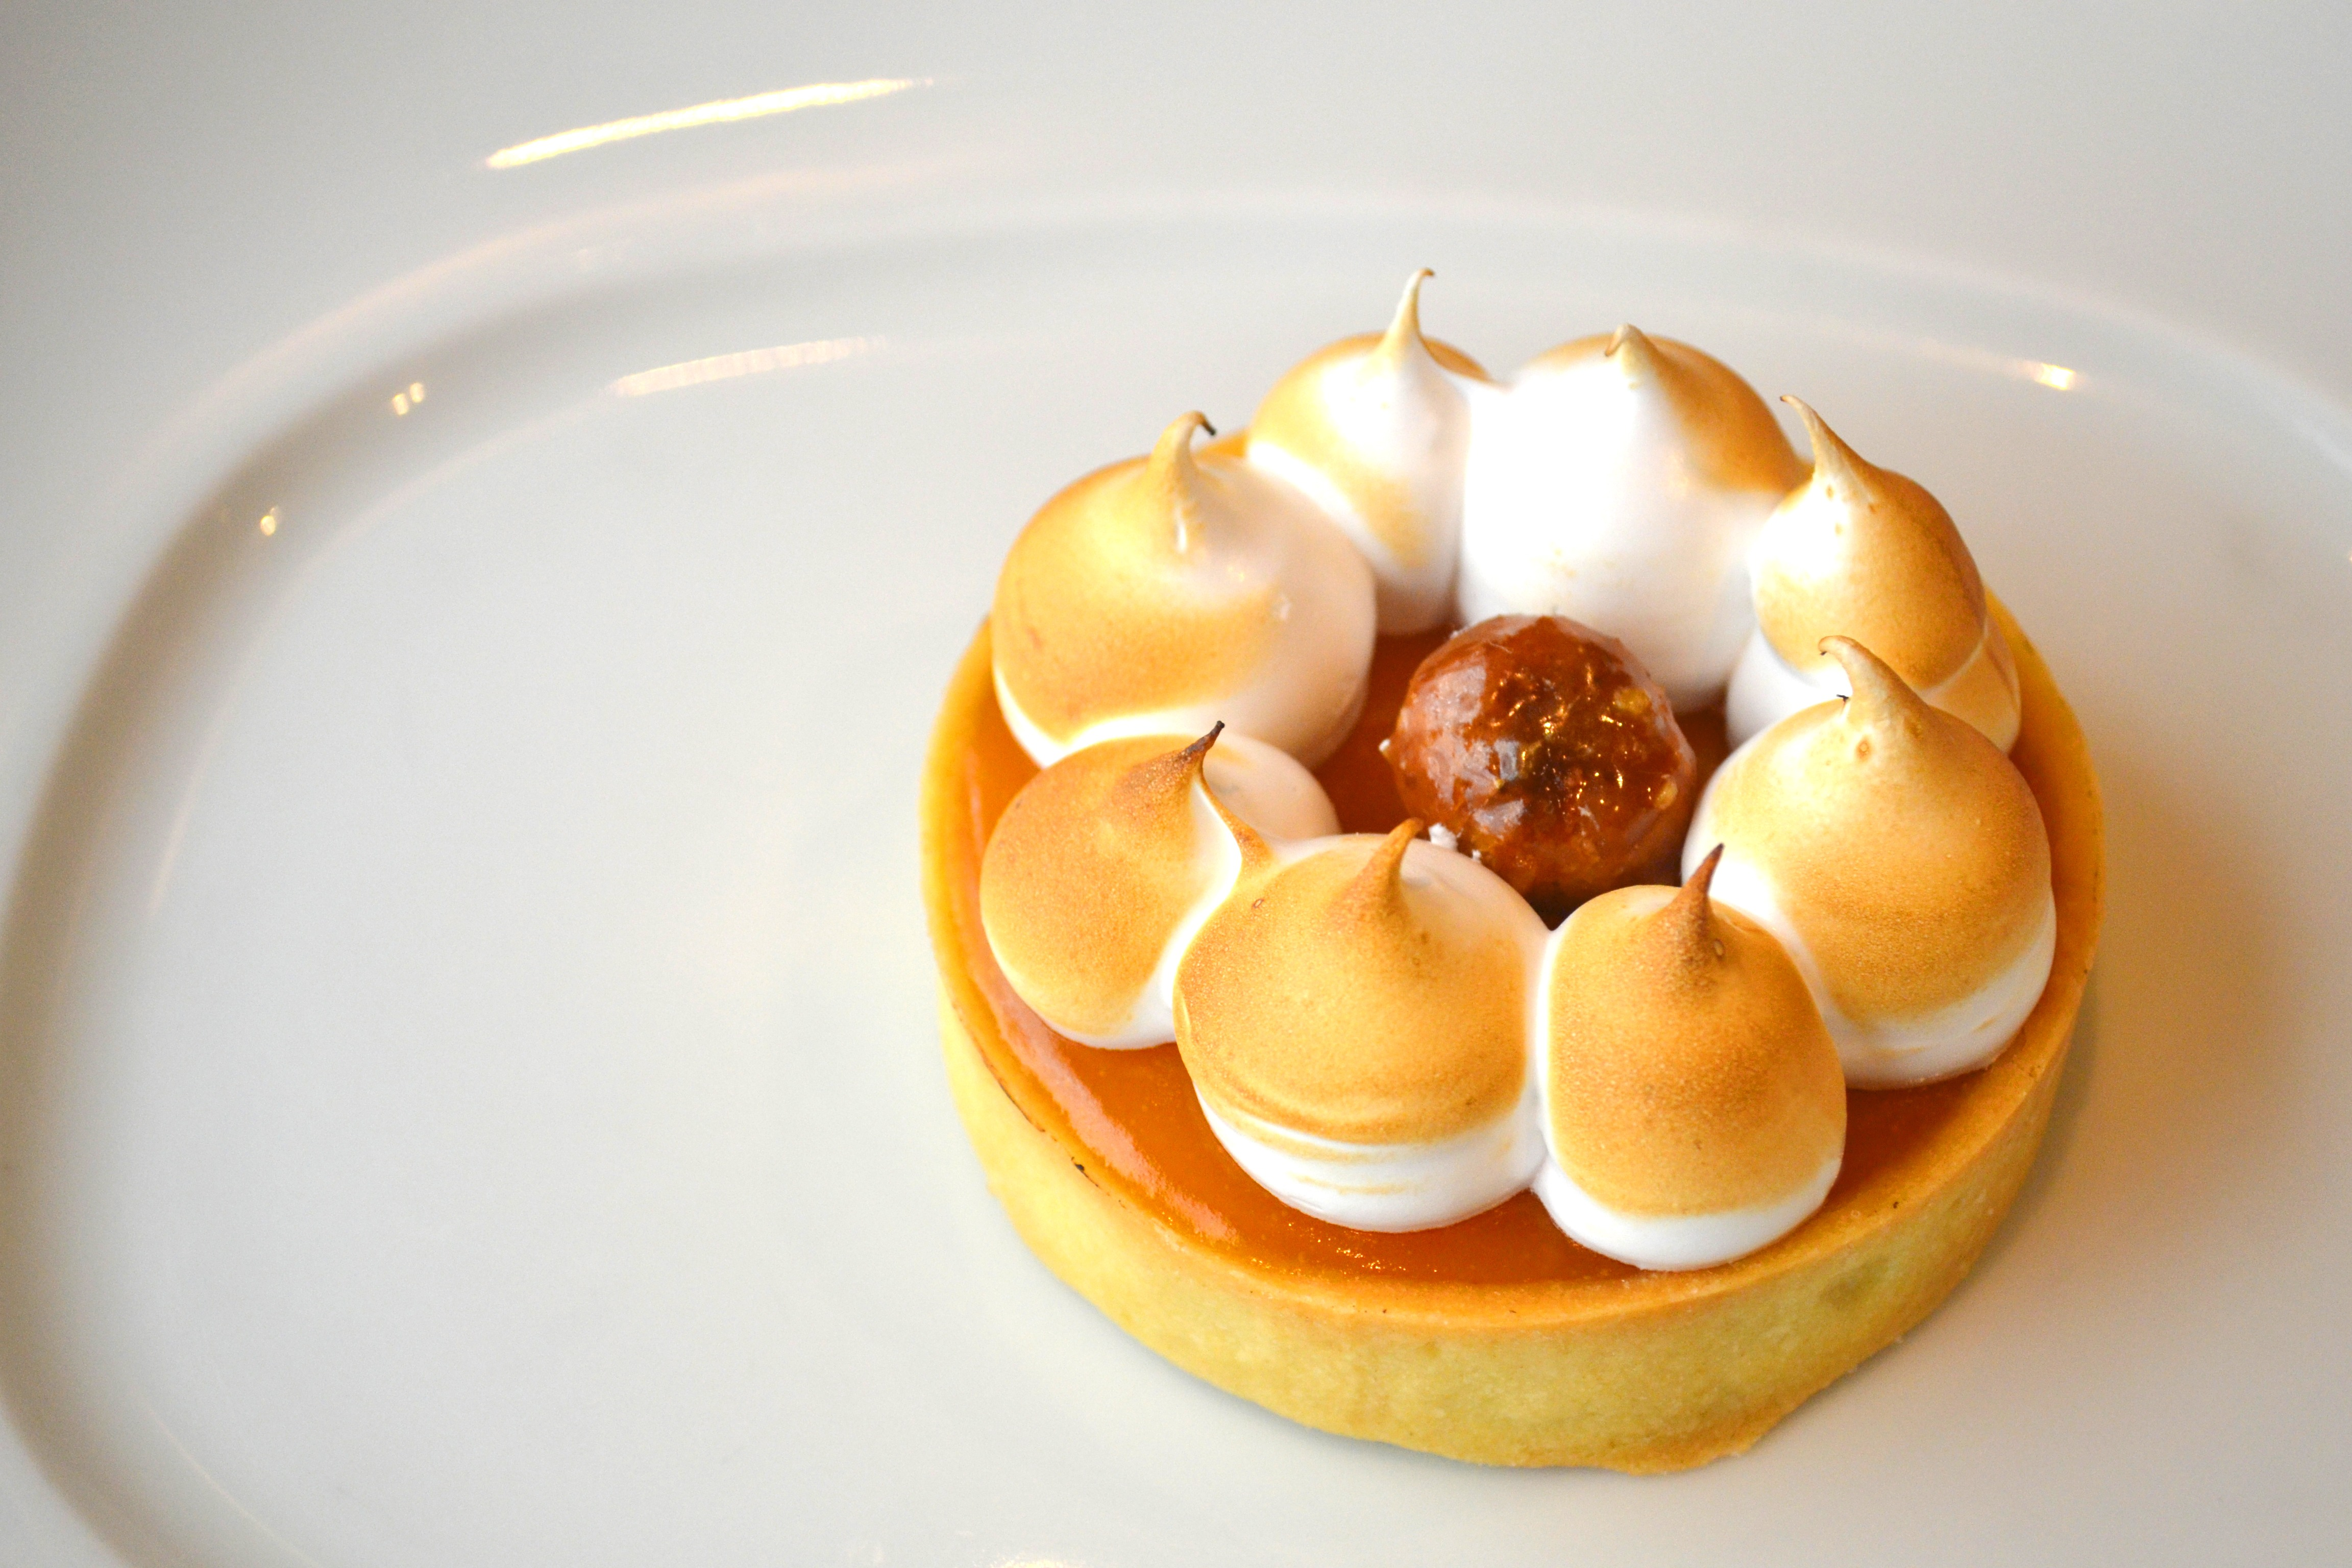 Ai-Fiori-Passion-Fruit-Tart_Anthony-Jackson.jpg